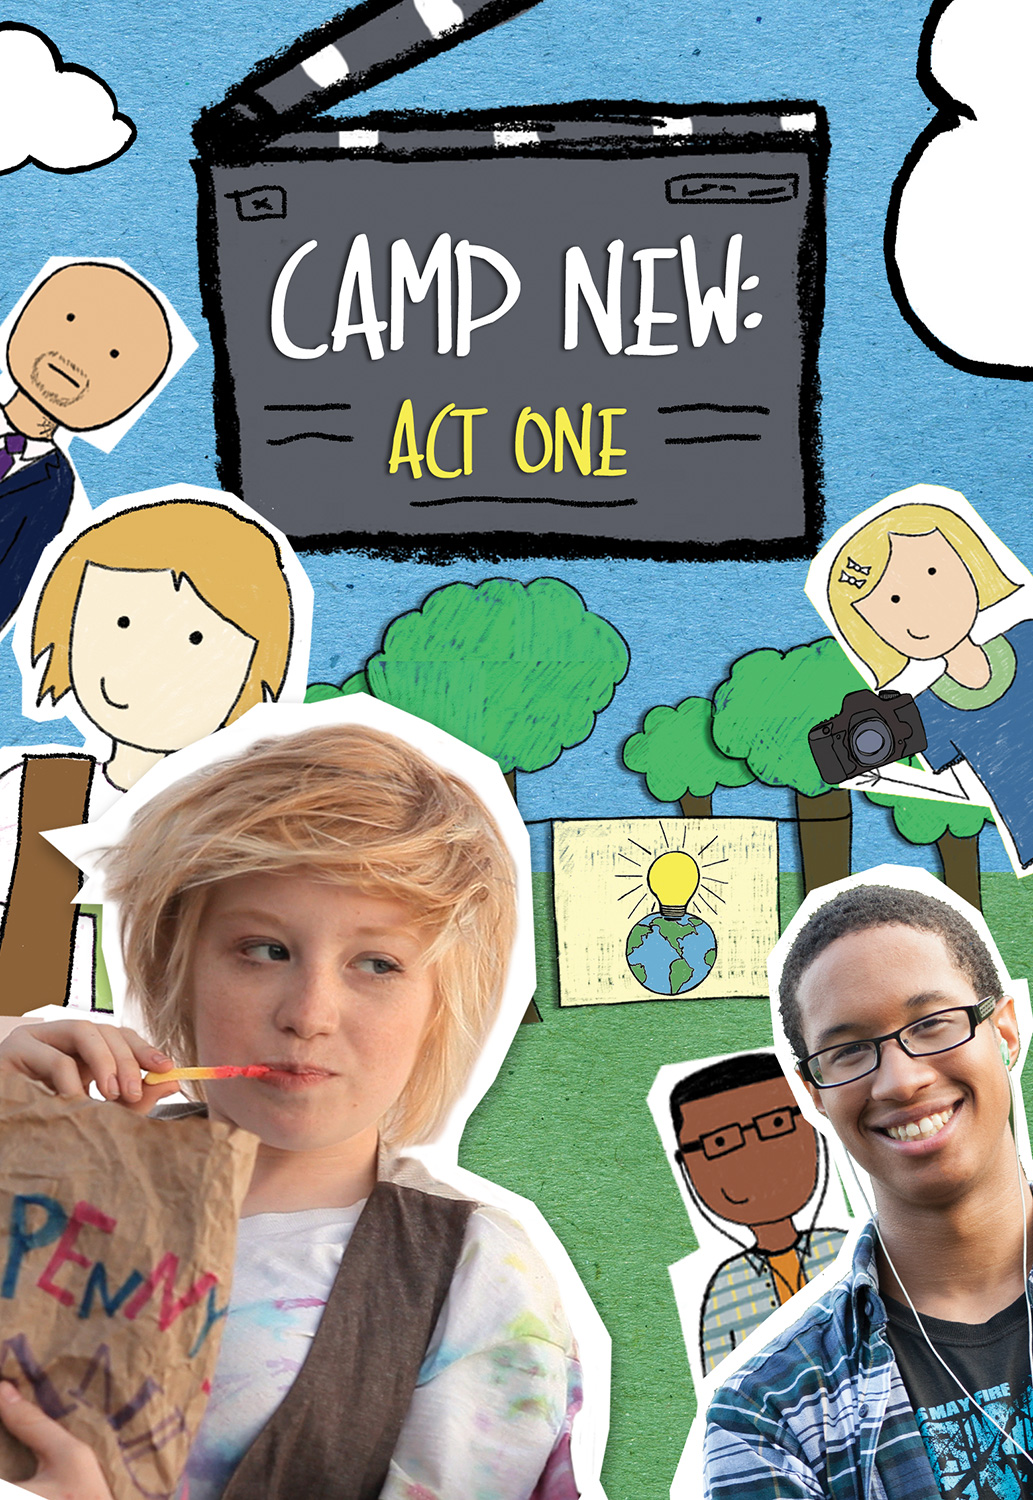 Camp New: Act One